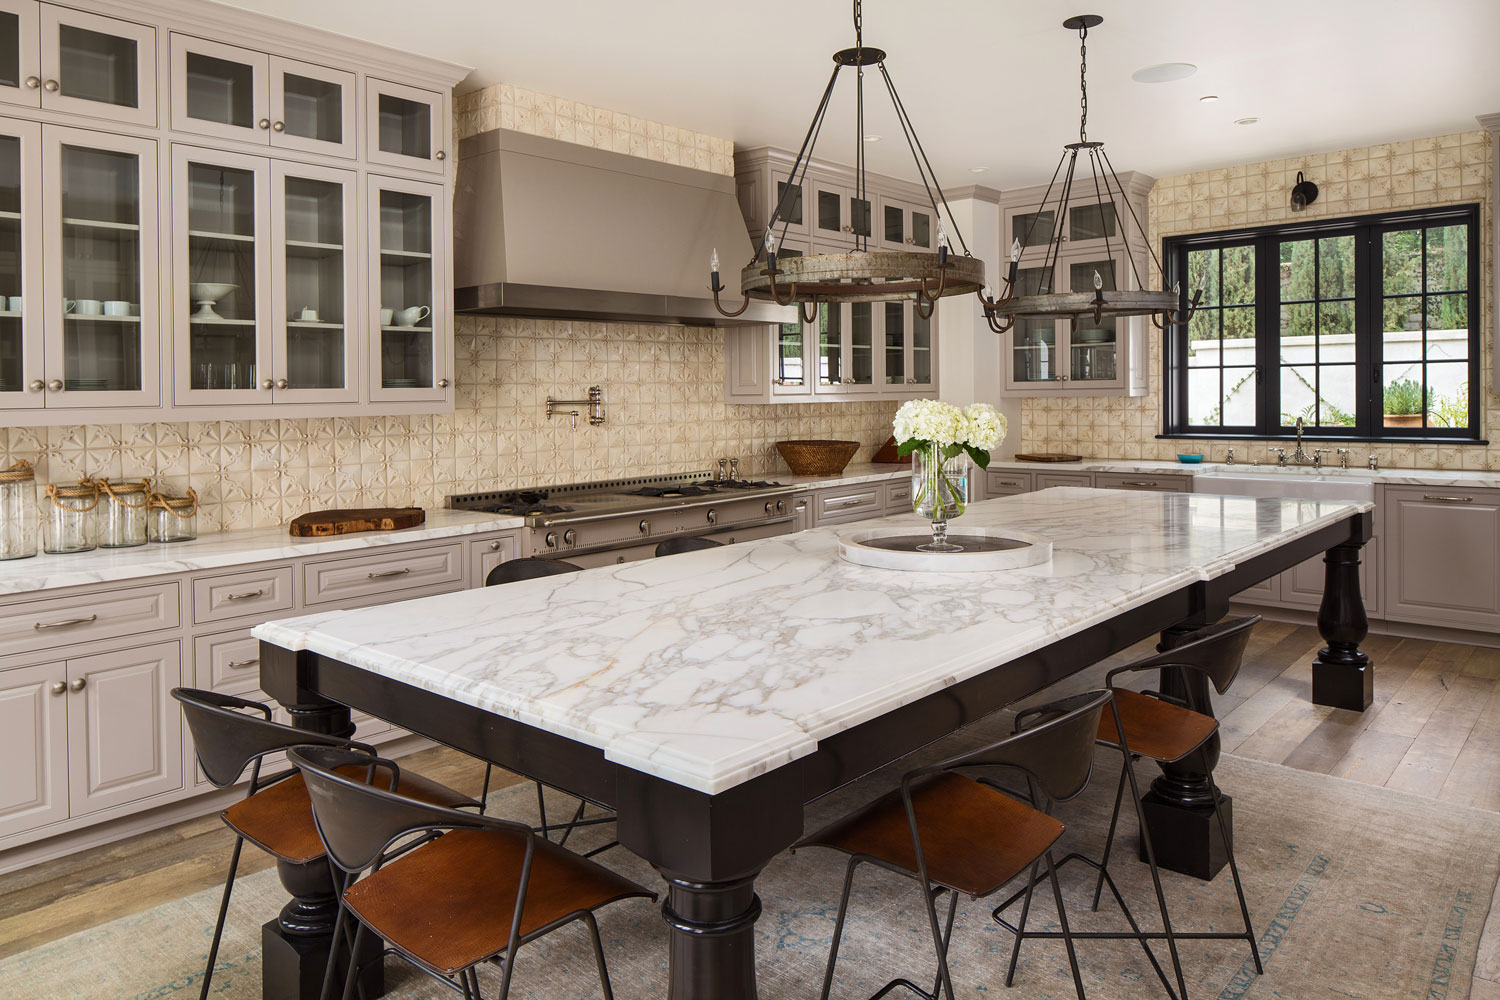 marble-top-kitchen-island-tile-backsplash-neutral-tones-chelsea-construction.jpg